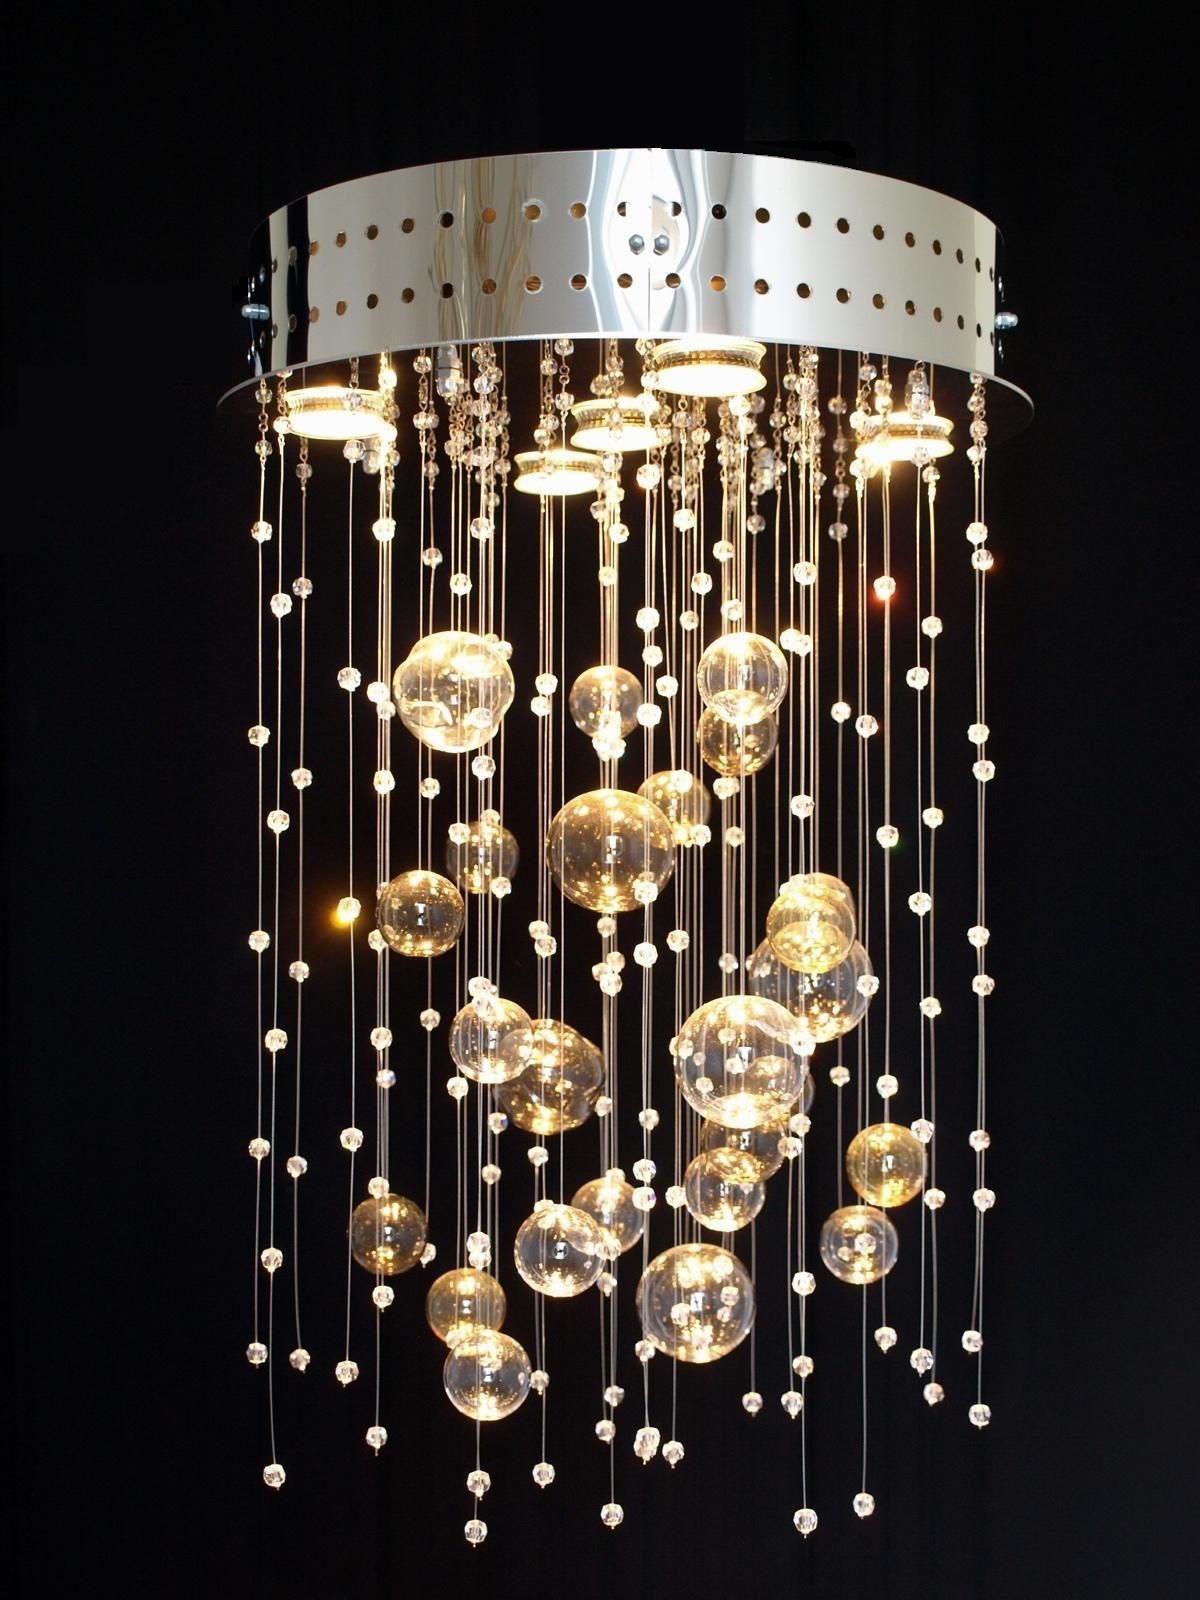 Widely Used Light Fitting Chandeliers Intended For Chandeliers : Glass Chandeliers Awesome Production Crystal Light (View 16 of 20)